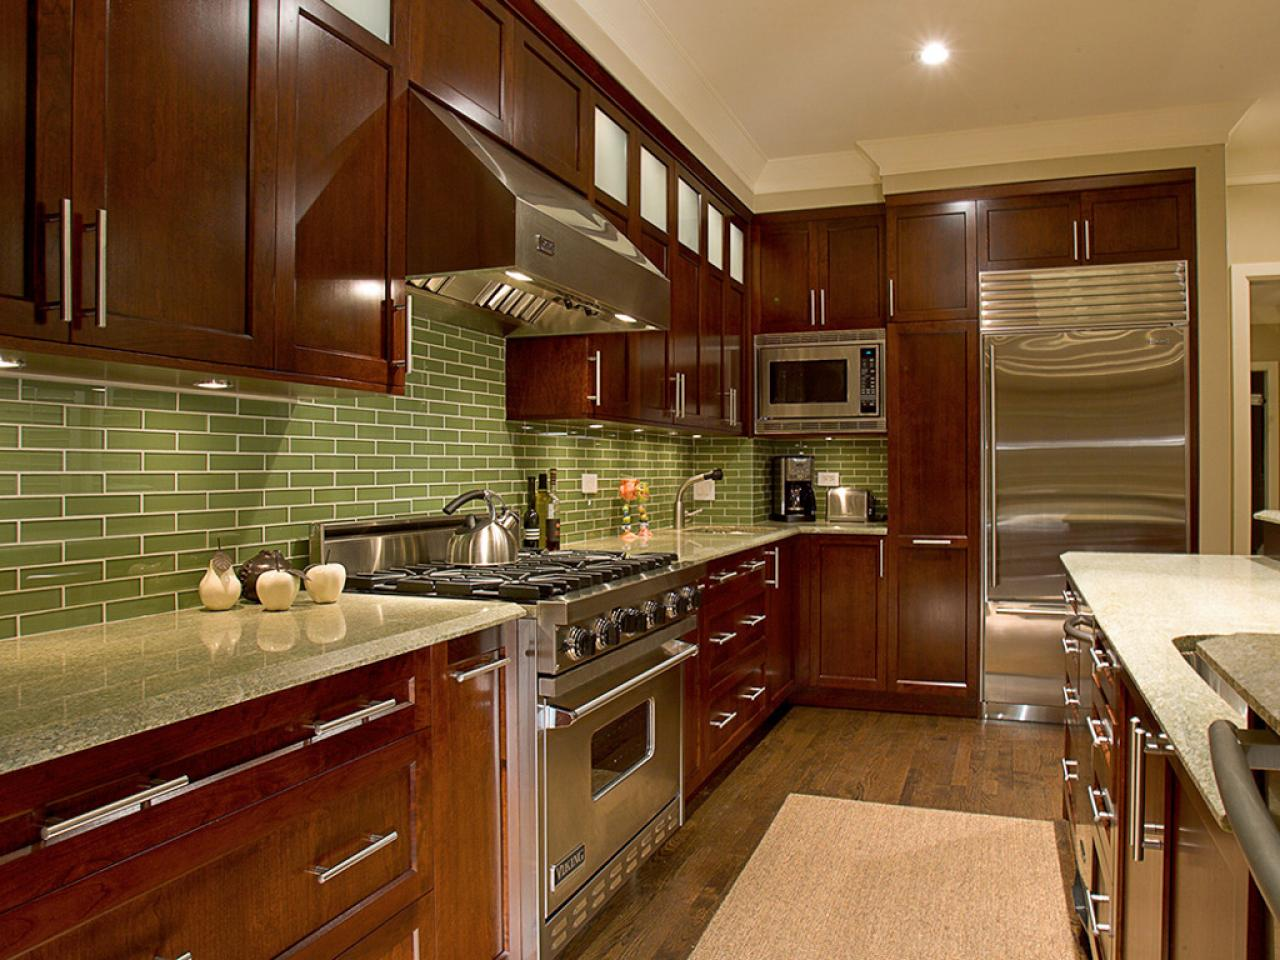 granite kitchen countertops pictures sherwin williams cabinet paint colors and ideas from hgtv